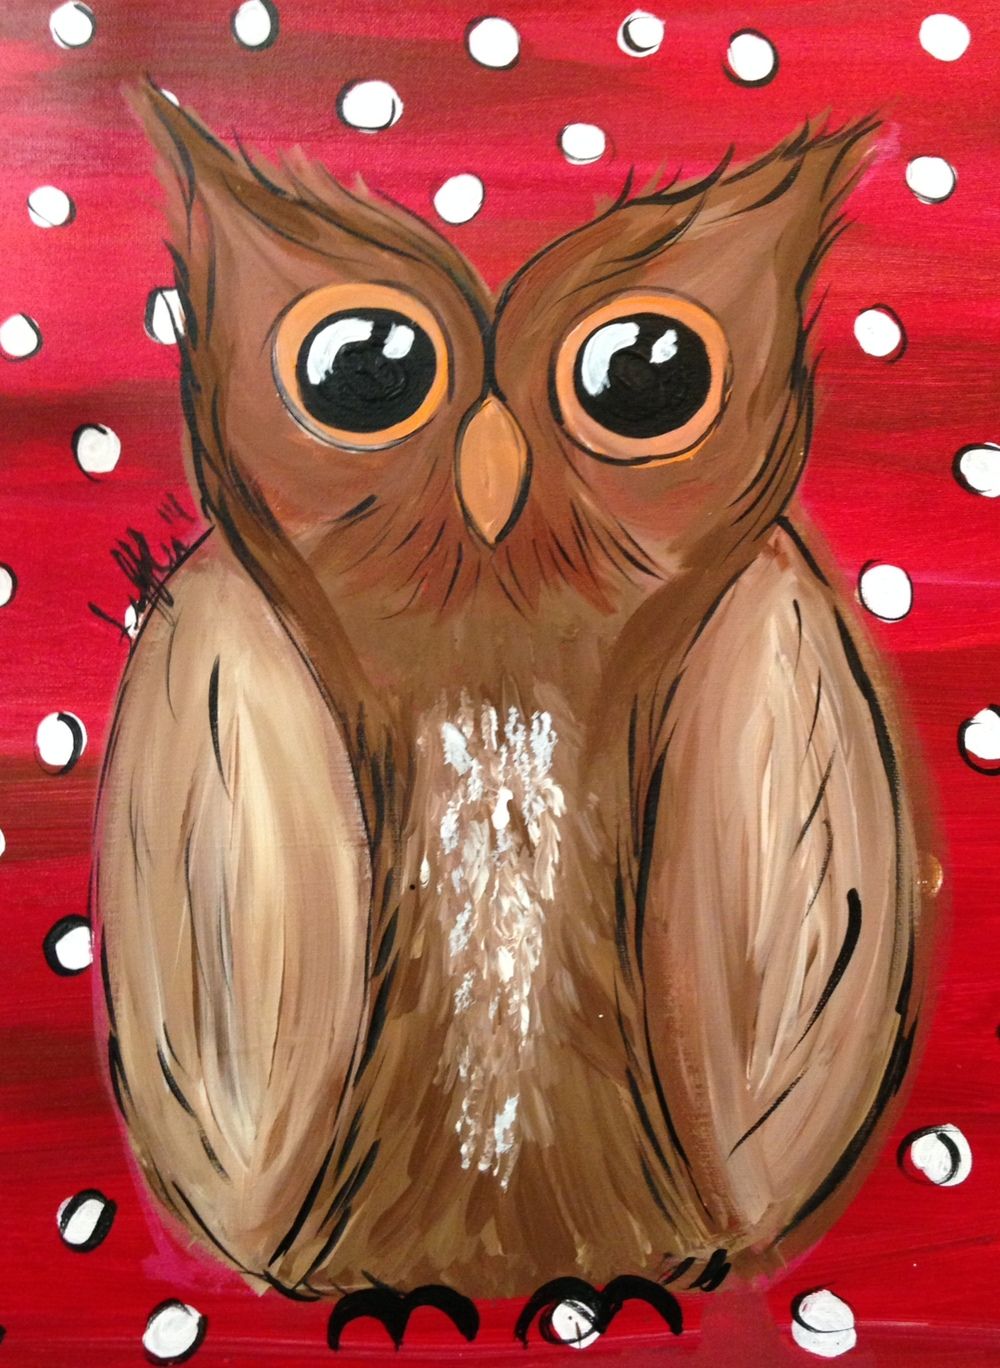 Owl on Red.JPG